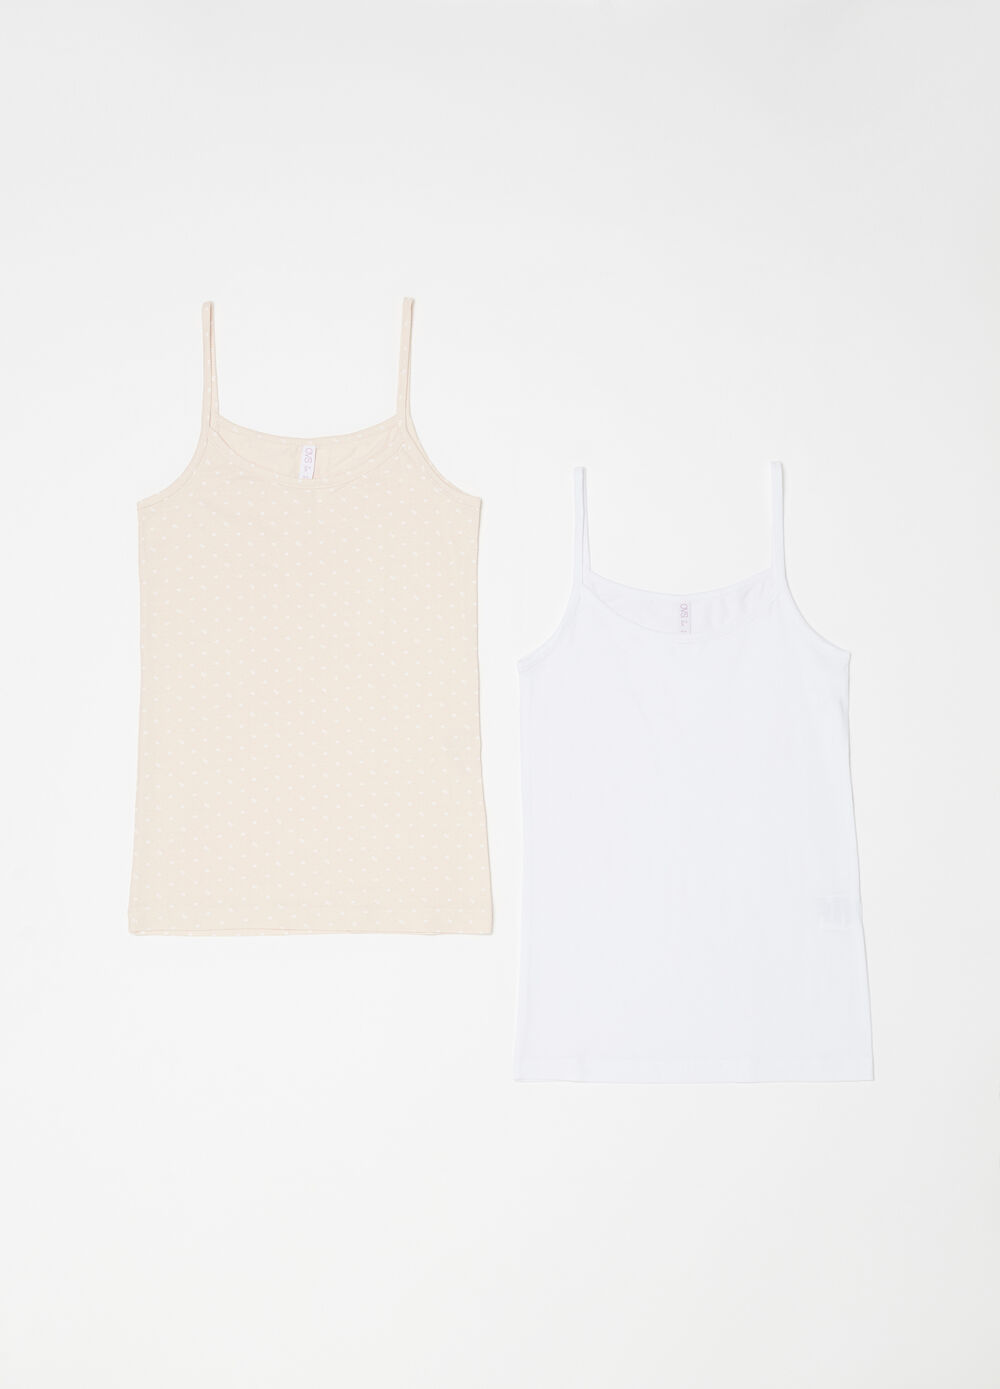 2-Pack vests